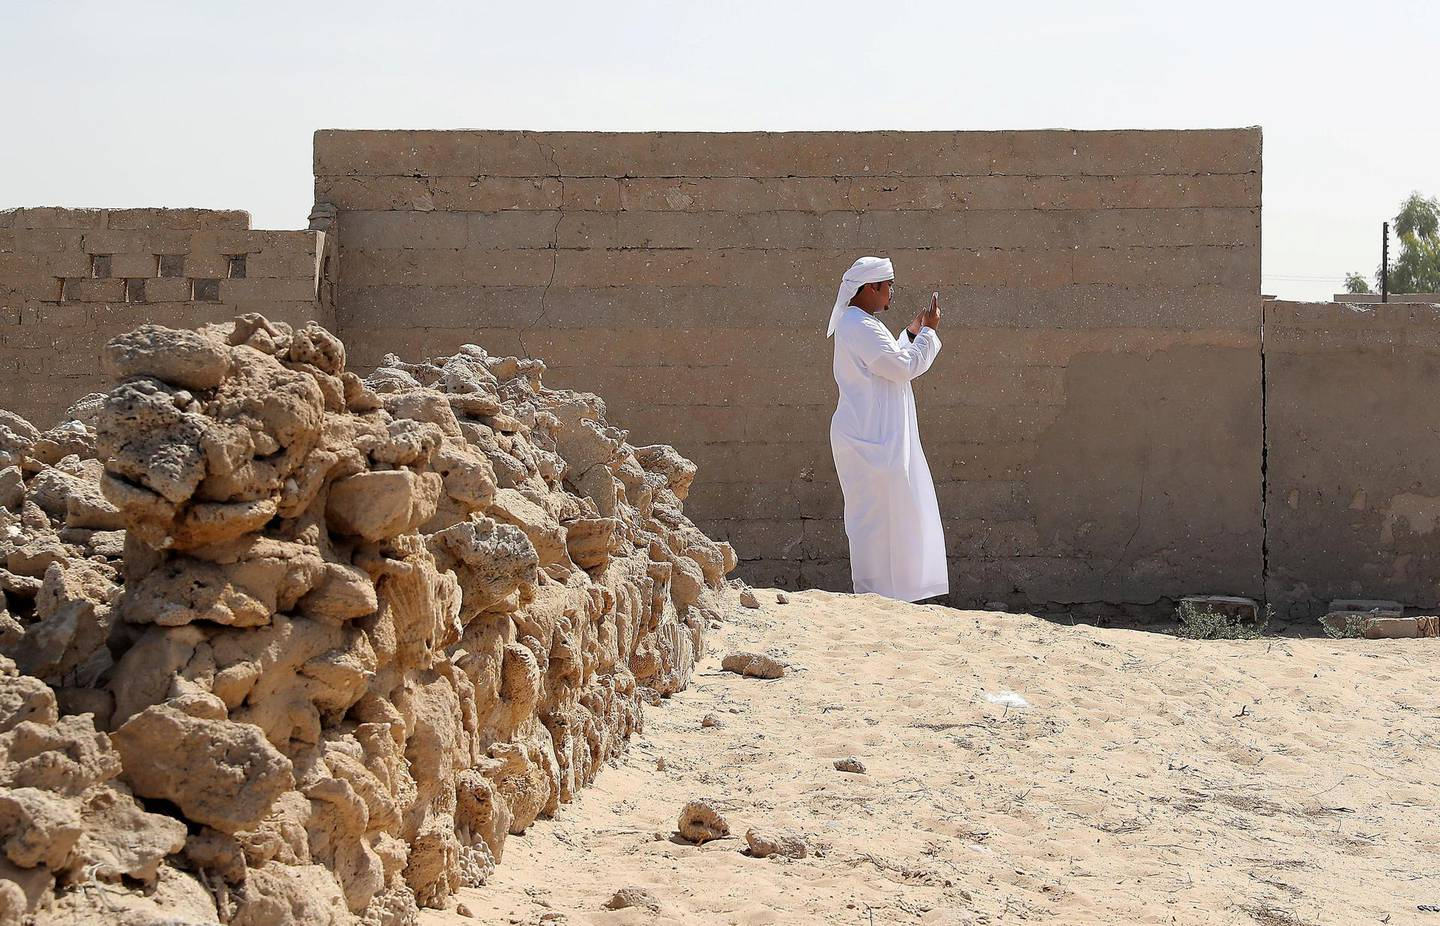 RAS AL KHAIMAH , UNITED ARAB EMIRATES , FEB 21  – 2018 : Student from Saeed Bin Jubair Secondary School taking photographs with his smart phone during the photography workshop at Al Jazirah Alhamra old town in Ras Al Khaimah. ( Pawan Singh / The National ) For News. Story by Ruba Haza